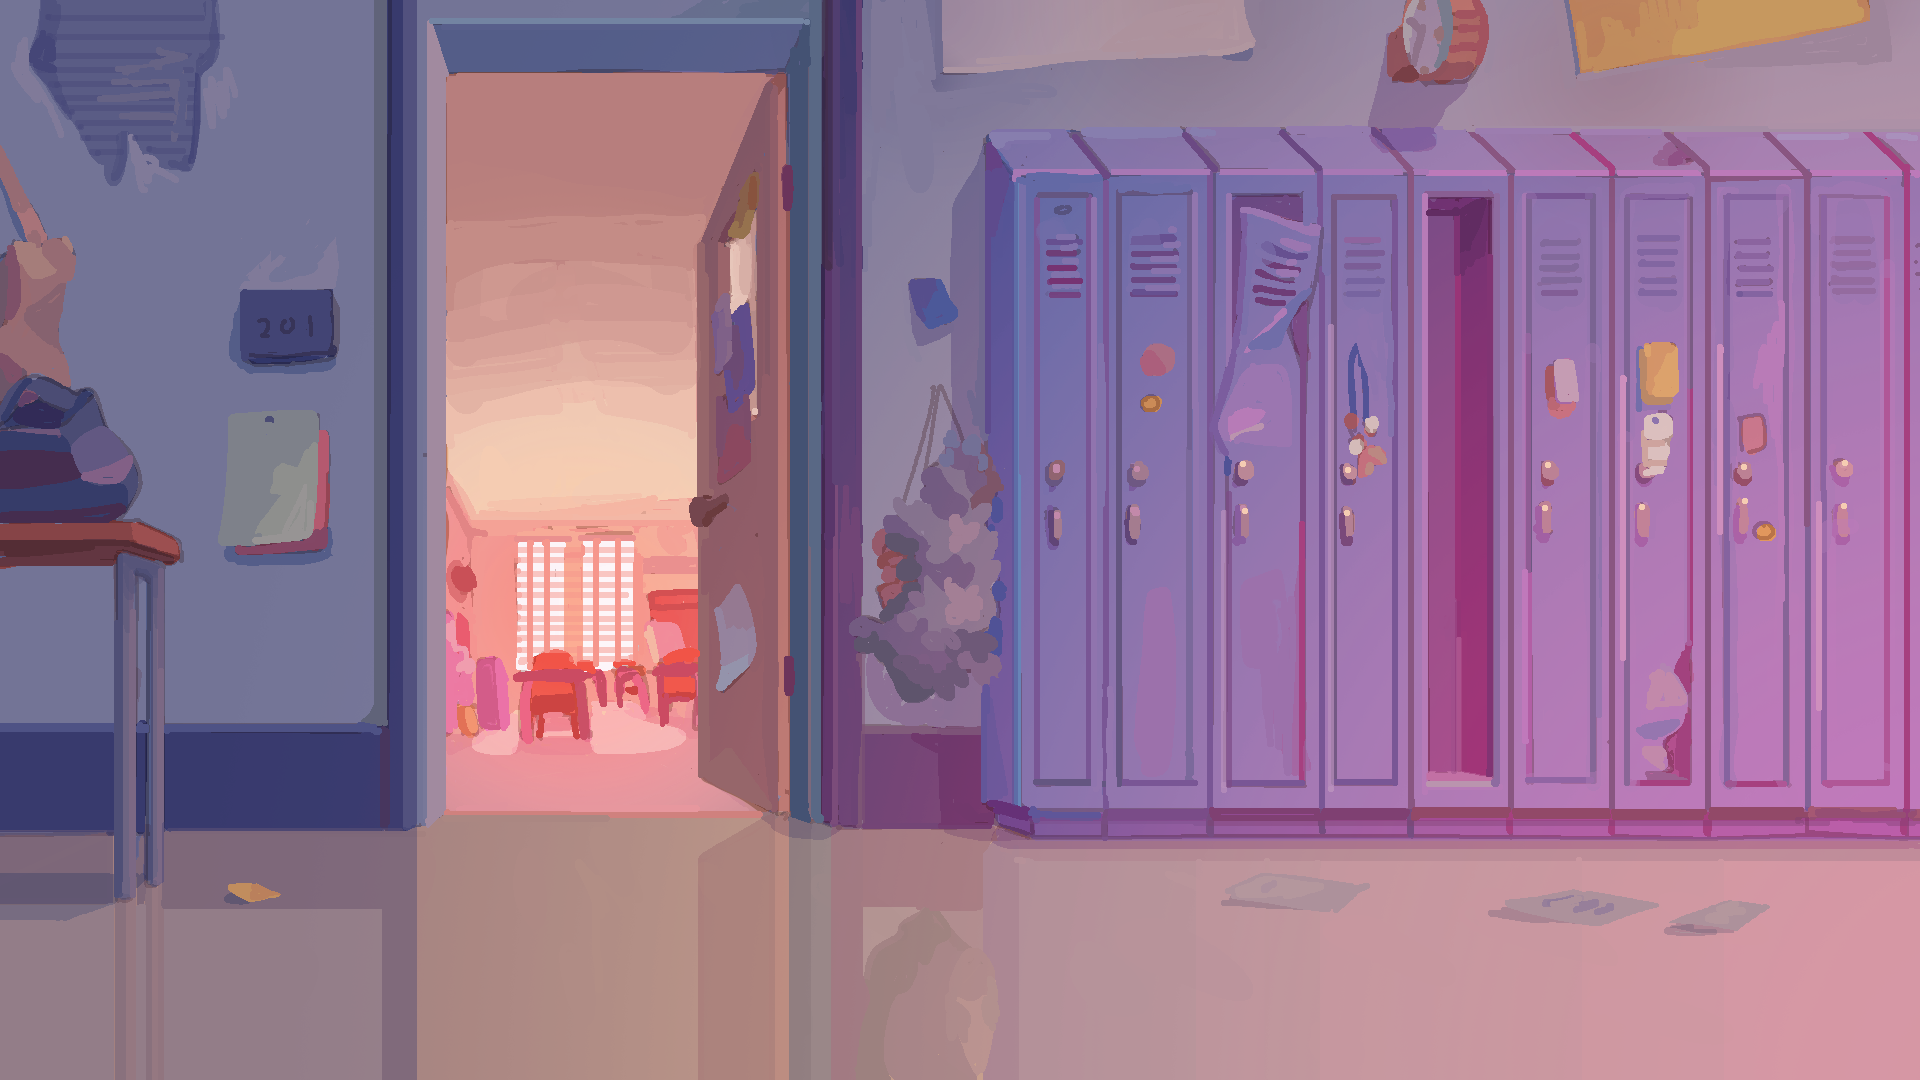 Digital painting of school hallway. Lockers to the right and open doorway and table to the left.